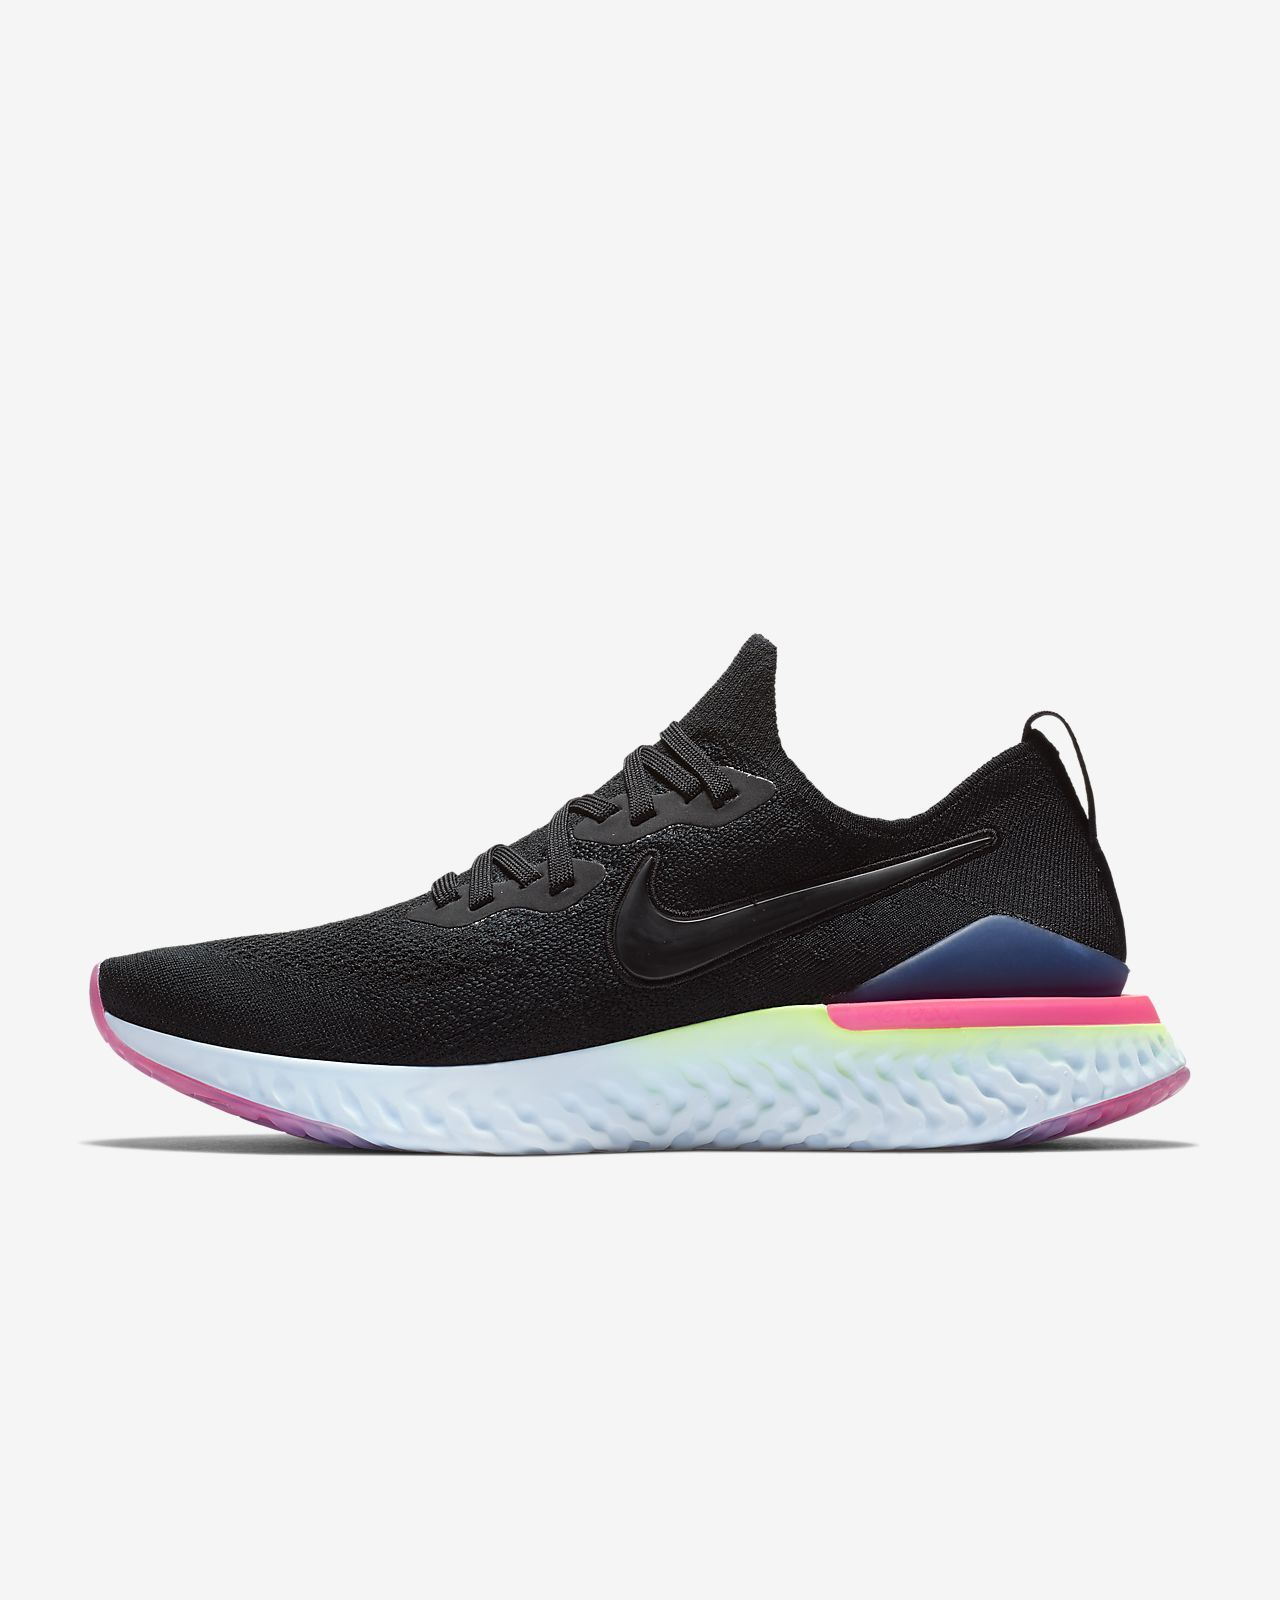 9a9cd12f5b9 Nike Epic React Flyknit 2 Men s Running Shoe